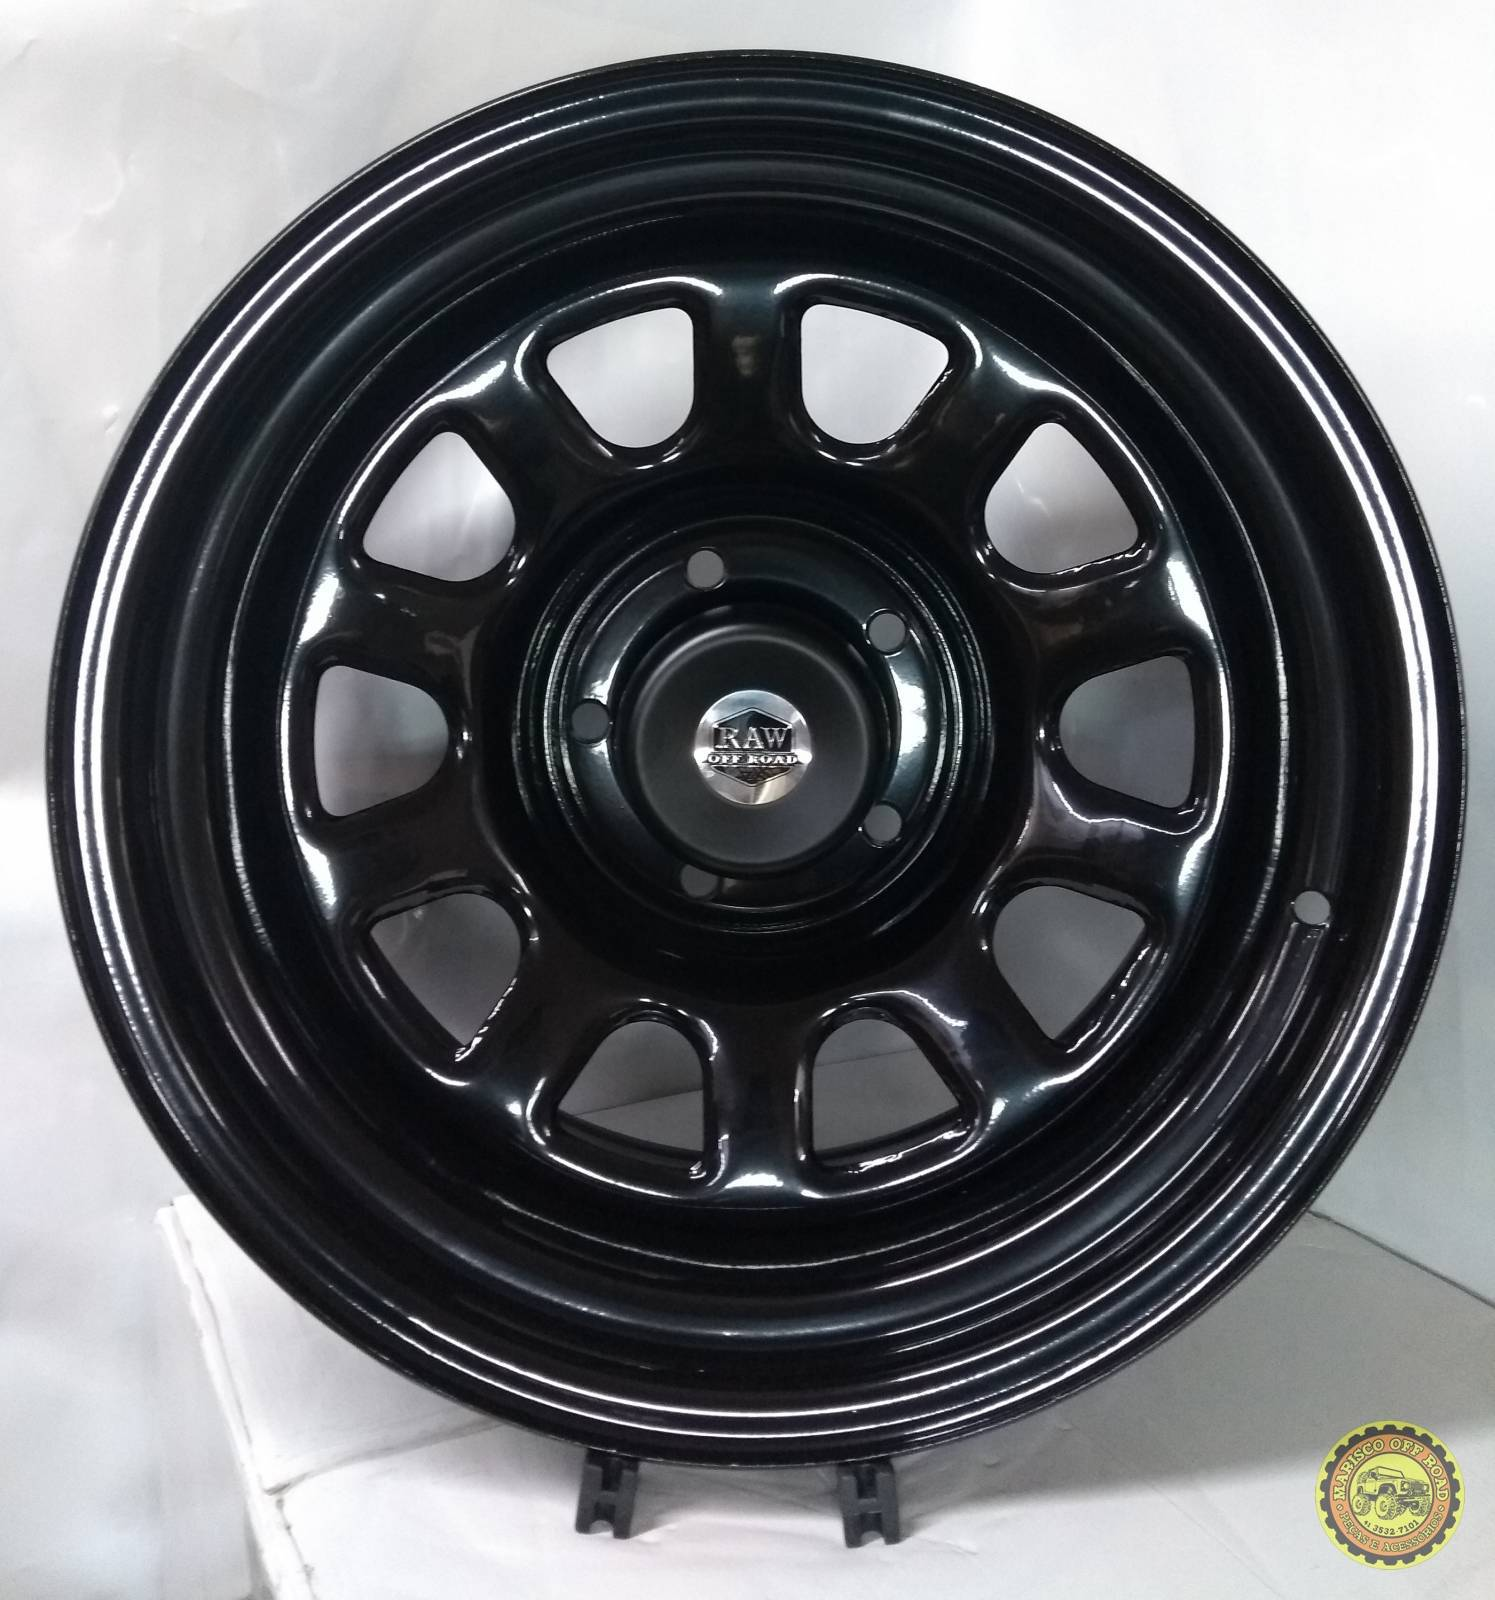 Roda 17x9 RAW Daytona, 5x139,7, Off Set -25 - JEEP-F75-RURAL - Marisco Off Road